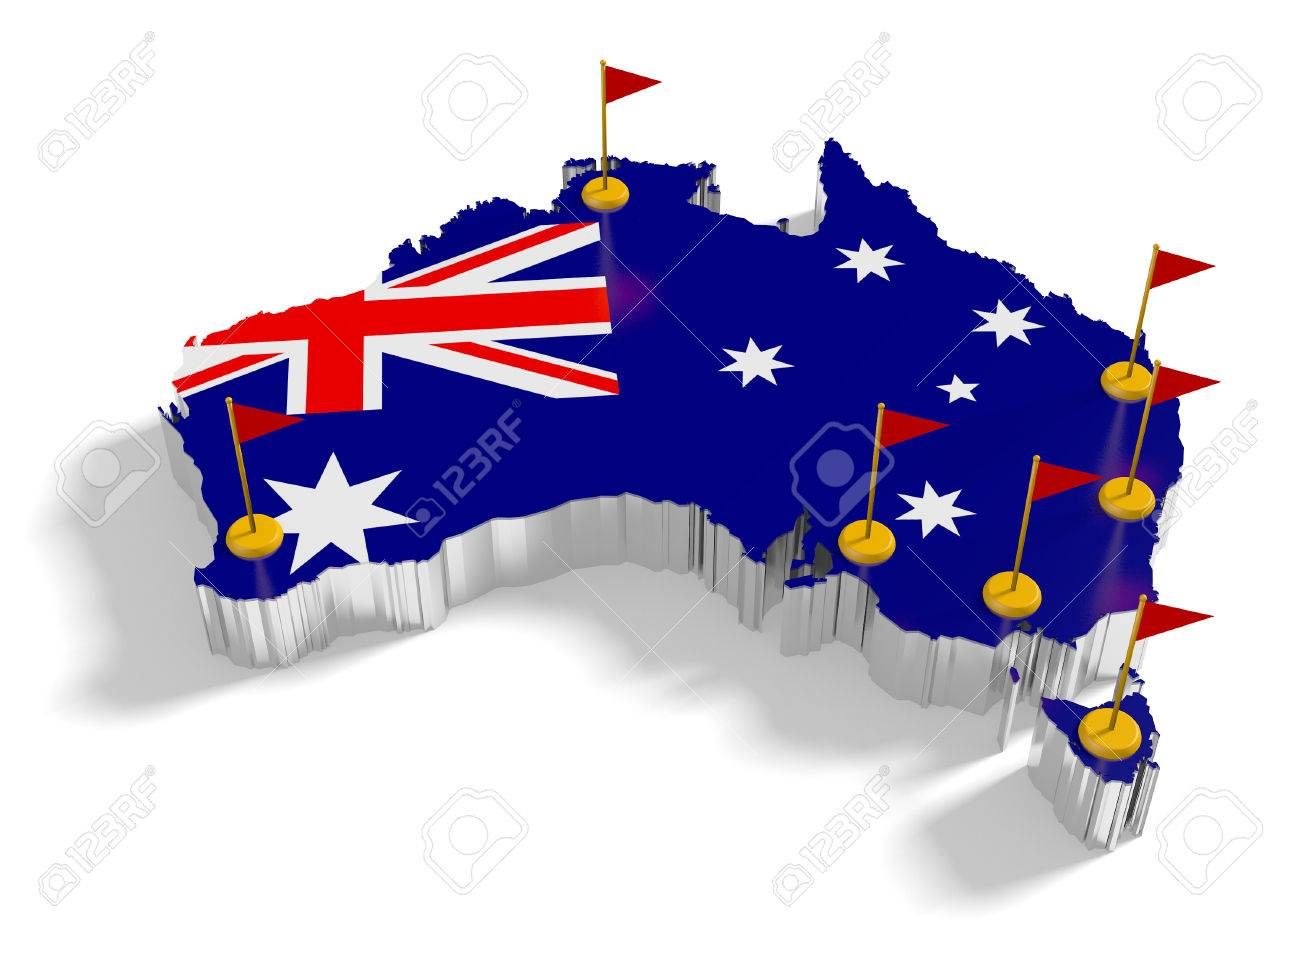 Australia Map Major Cities.Australia Map With Flags On The Flagpoles Showing The Major Cities